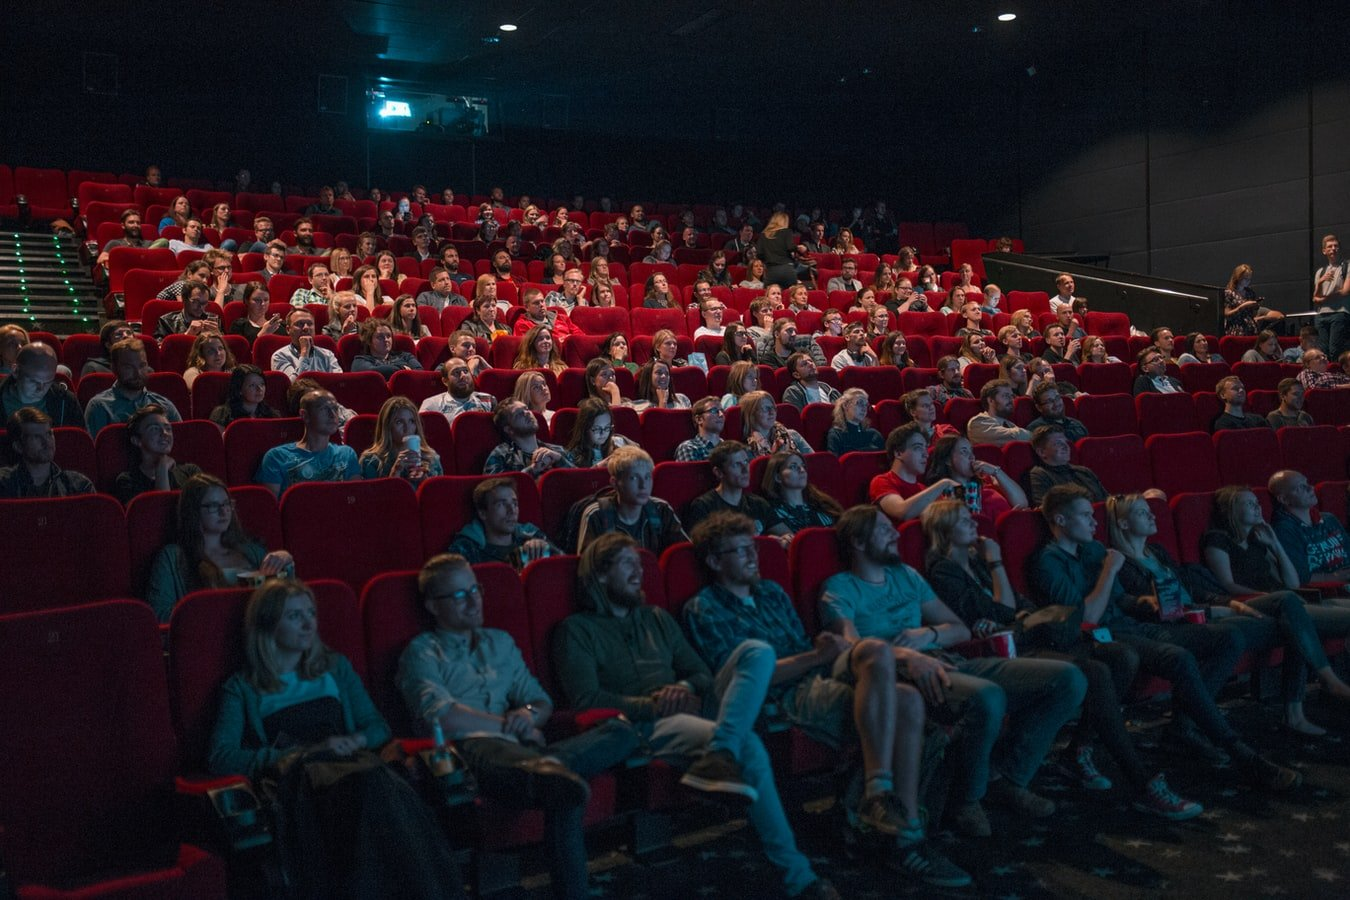 People watching a movie in a cinema. | Photo: Unsplash/Krists Luhaers